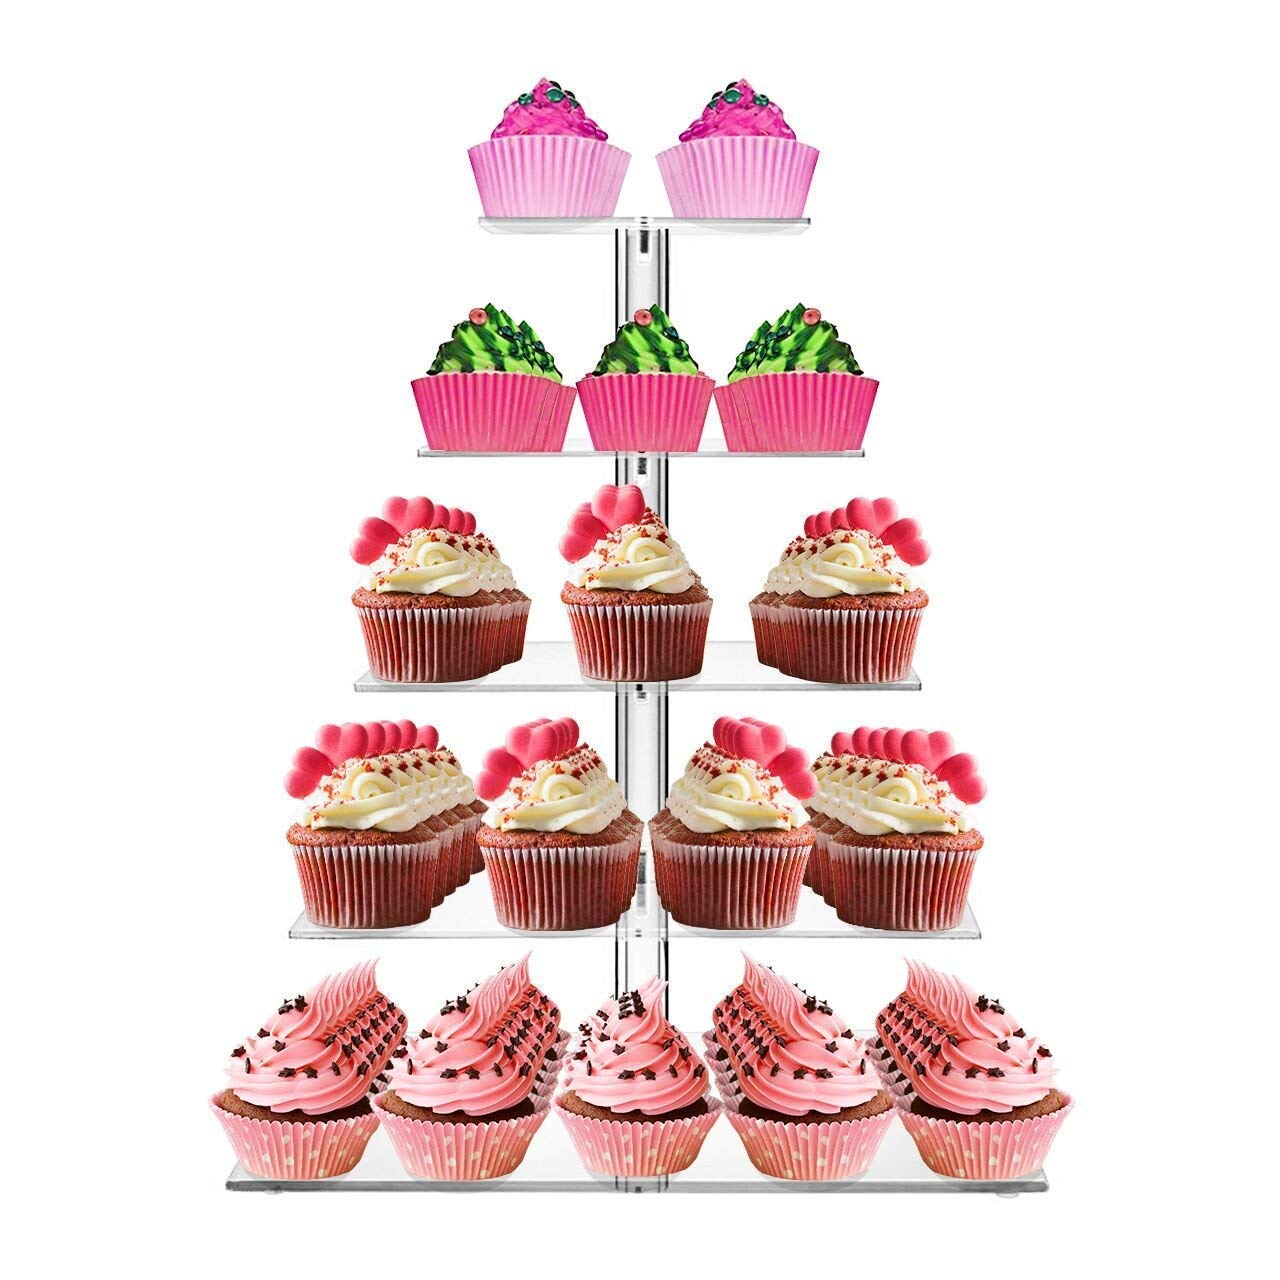 SortWise ® 5 Tier Square Wedding Party Tree Tower Acrylic Cupcake Display Stand (Also can use as 1 2 3 4 Tier) SaveOnMany